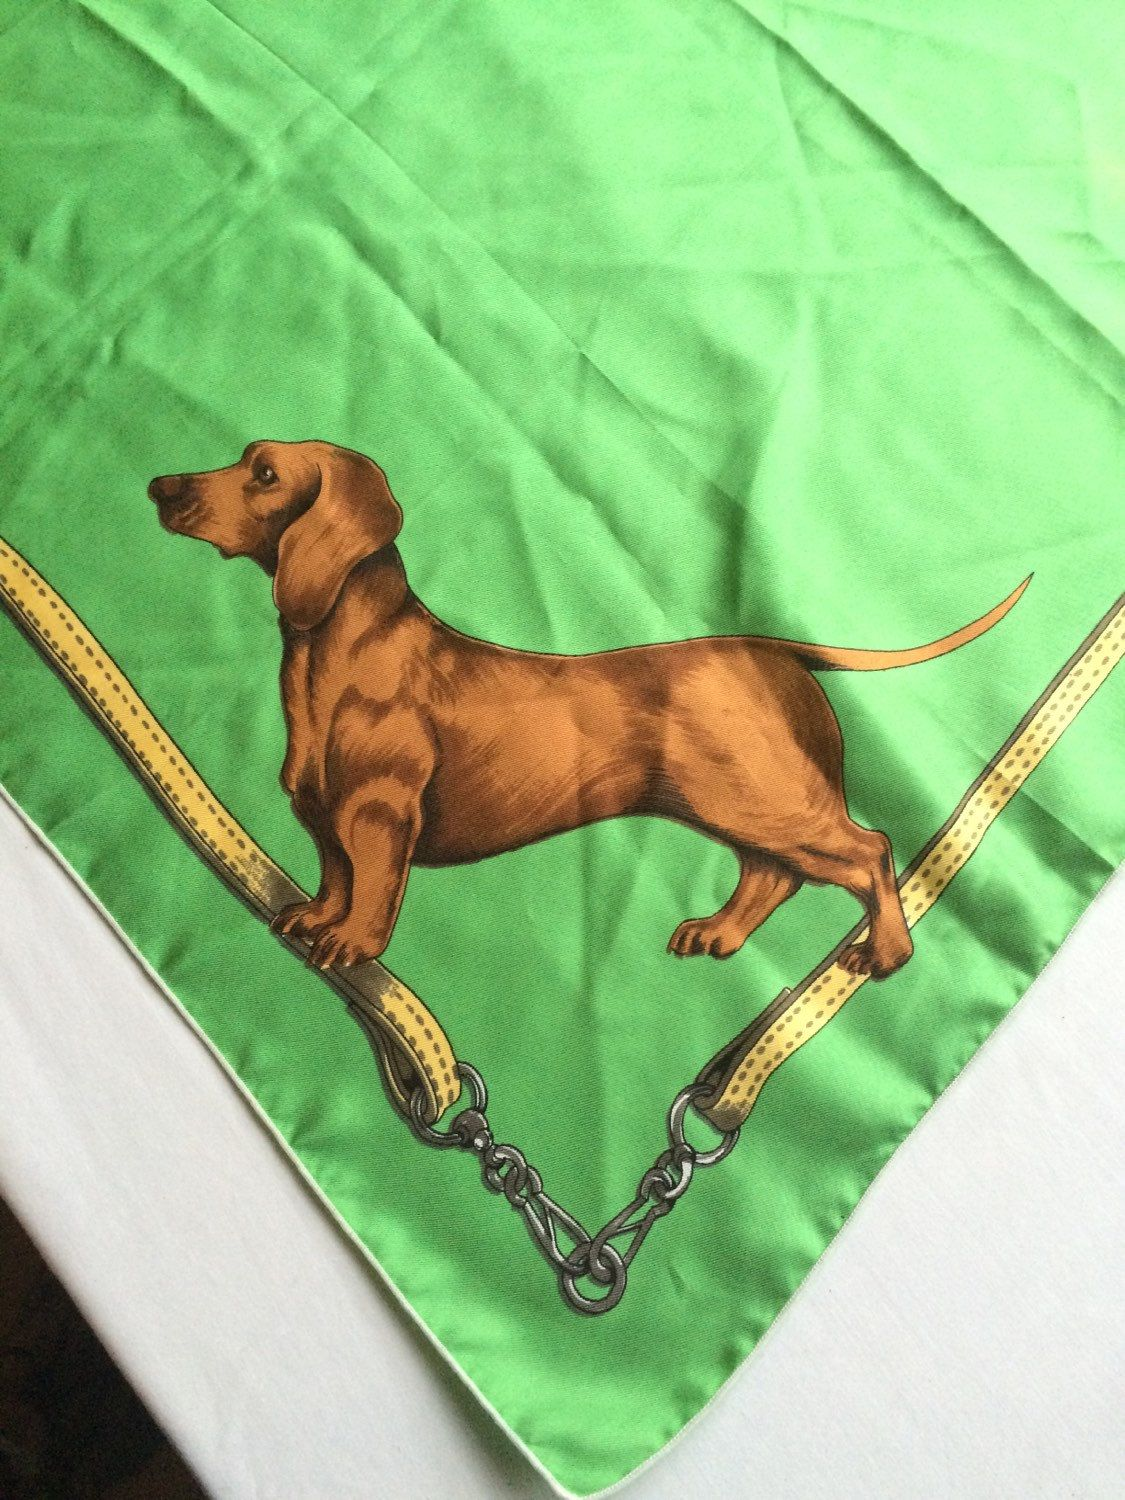 RARE Vintage SOIE made in France French silk Scarf Dog Lover scarves Dachshund Silk Hand Rolled Weiner Dog motif Green by JanetsVintagePlanet on Etsy